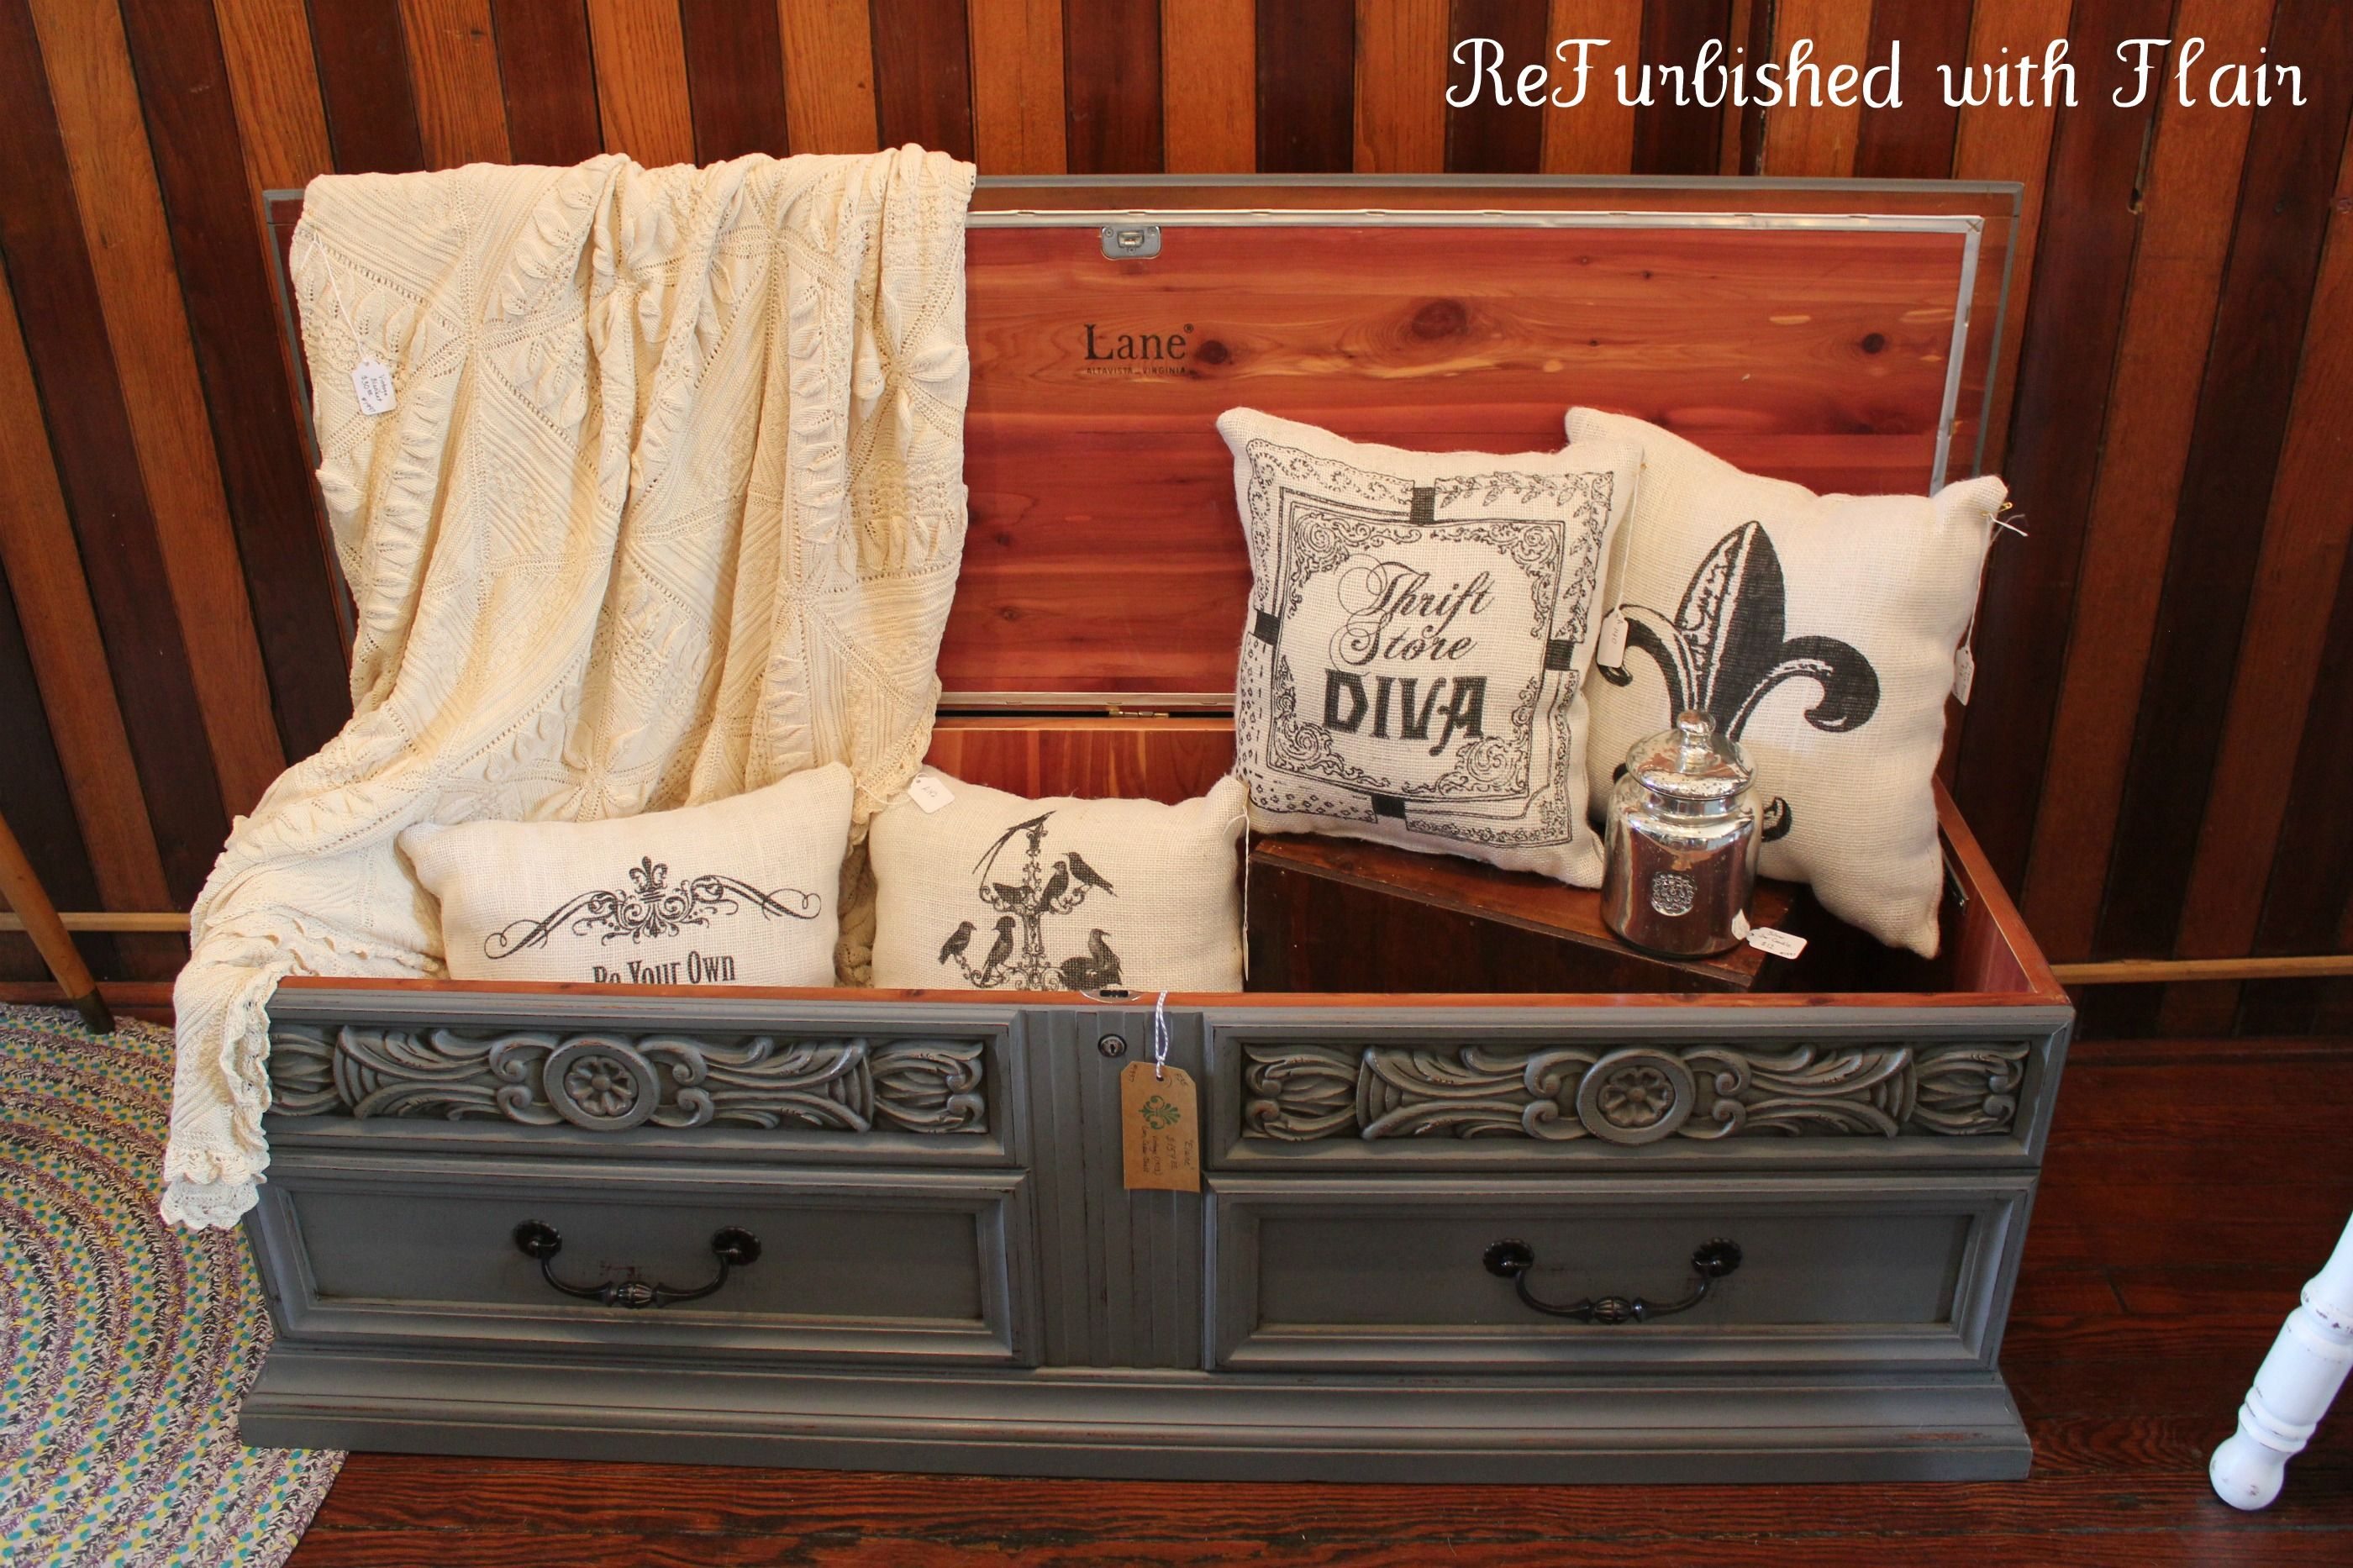 Lane Cedar Chest Painted With Maison Blanche's Confederate